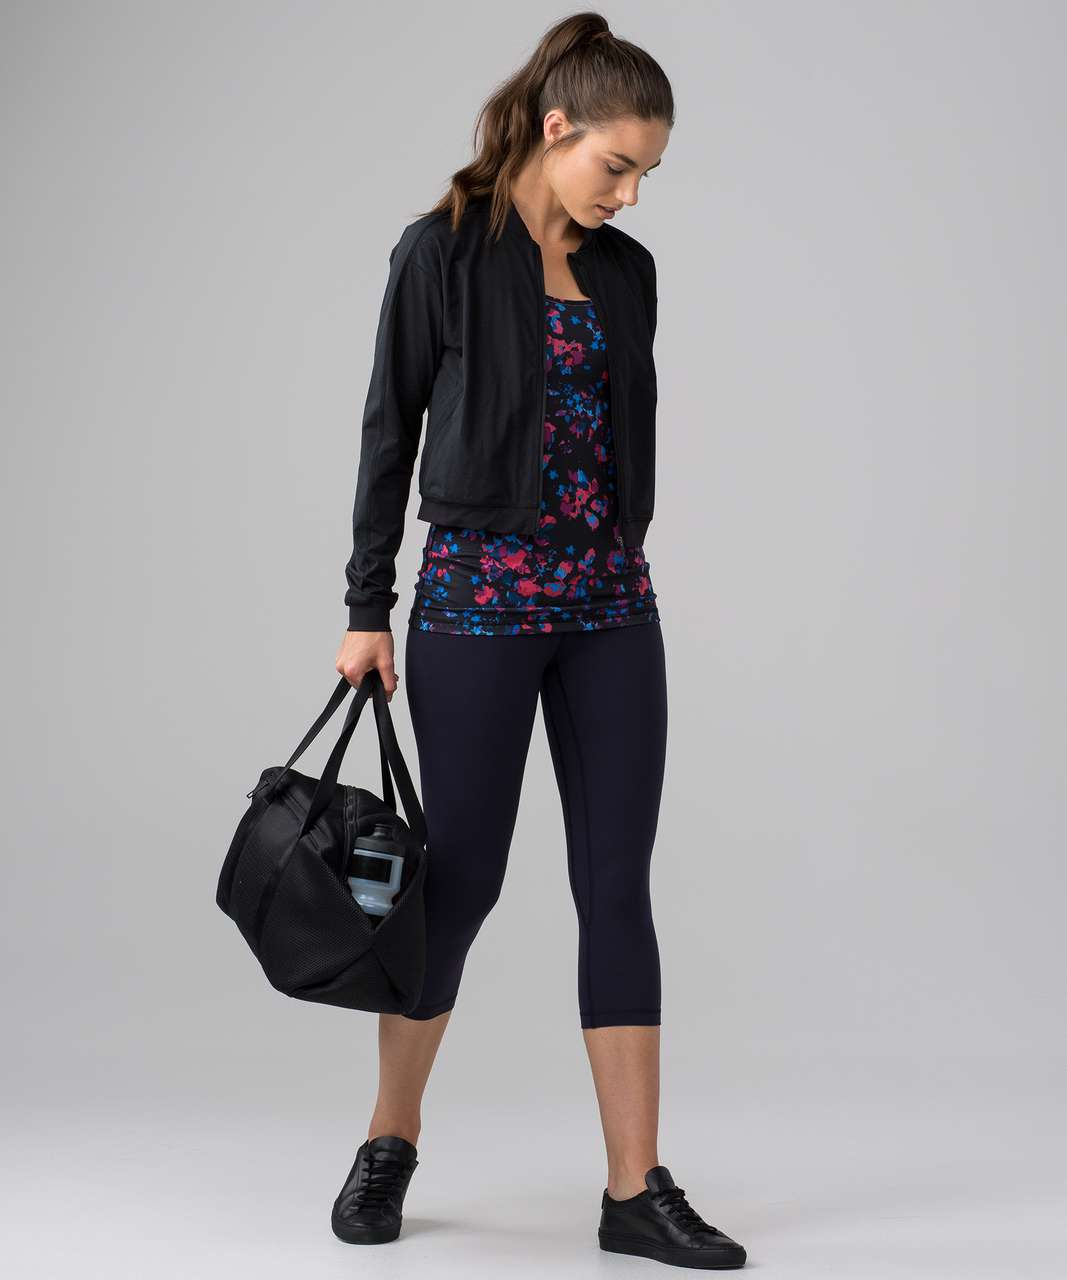 Lululemon Power Y Tank - Dandy Digie Multi